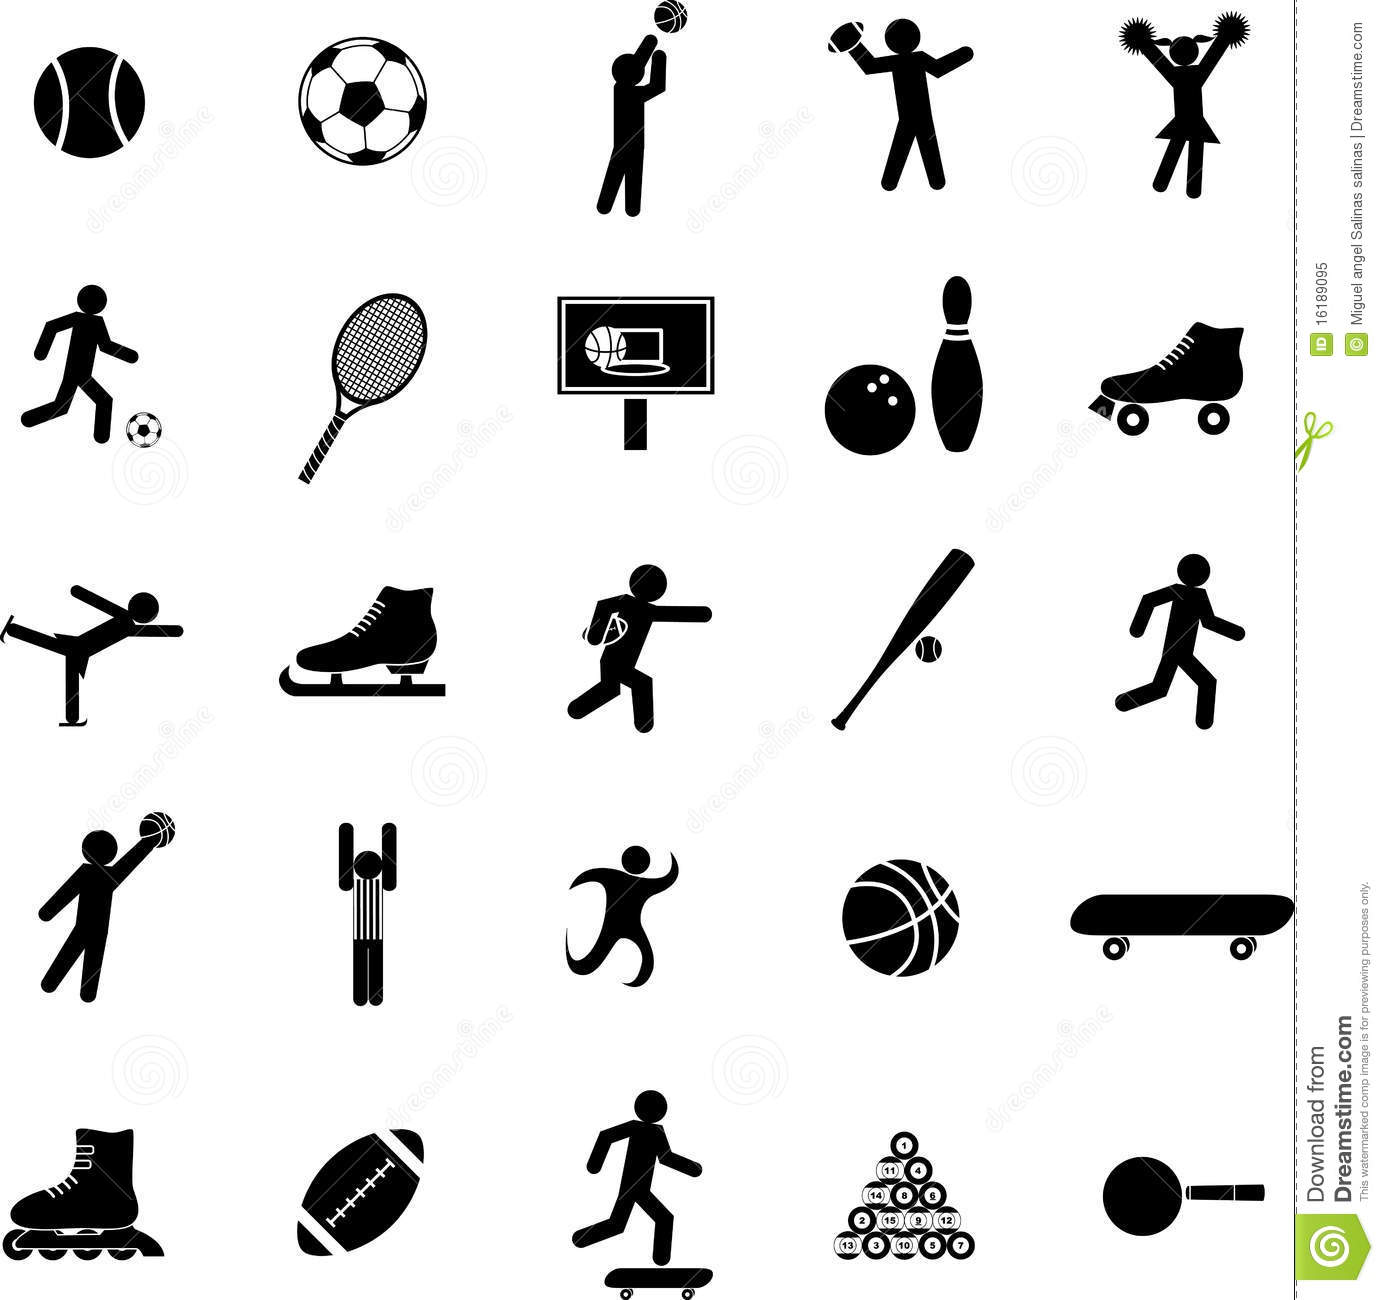 Sports Vector Symbols Or Icons Set Royalty Free Stock